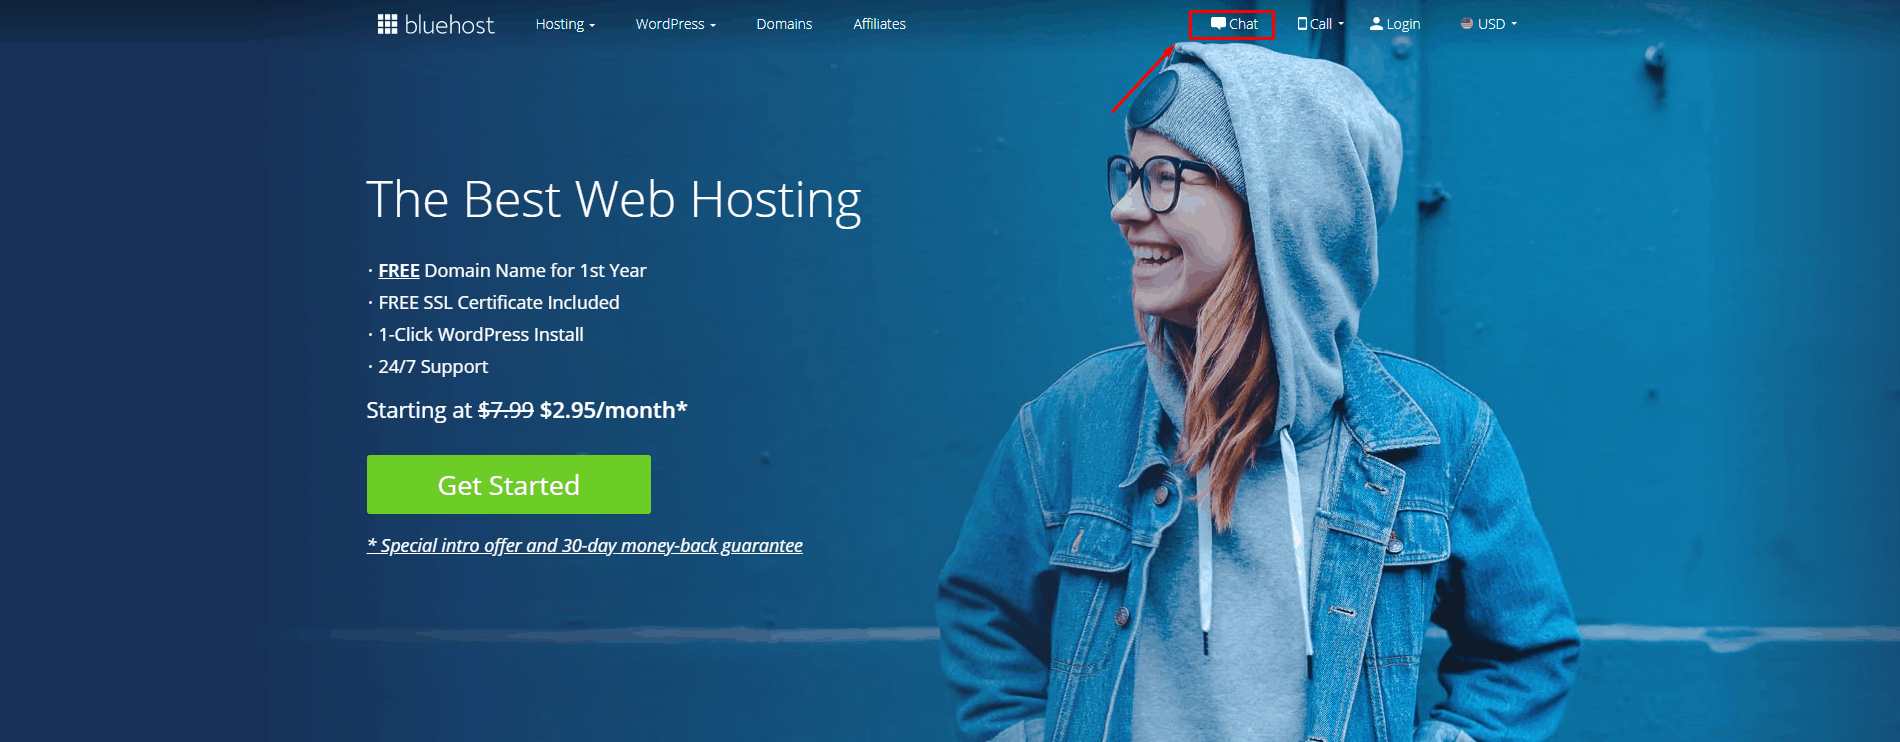 How to Cancel Your Account with Bluehost and Get a Refund